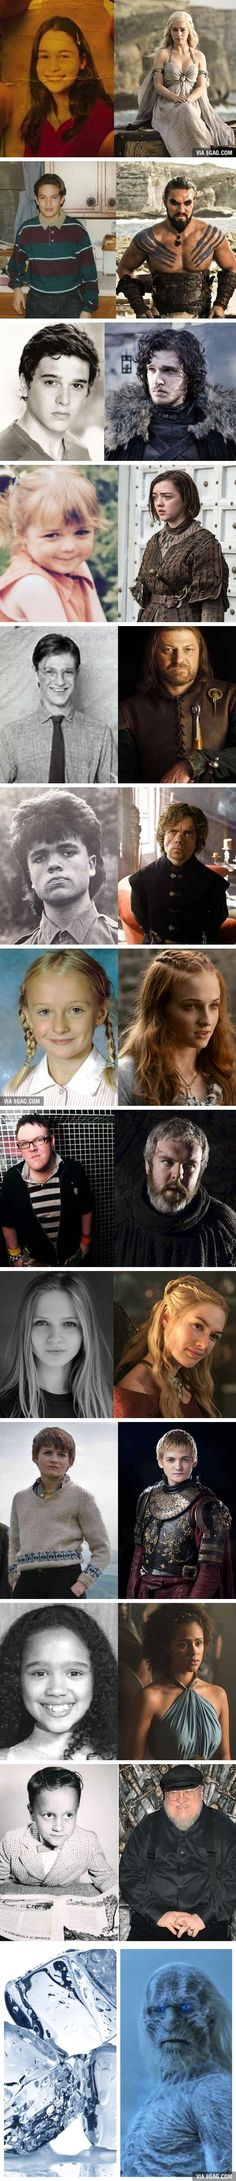 Game Of Thrones - then and now---OH MY GOD! Peter/Tyrion's hair!!!